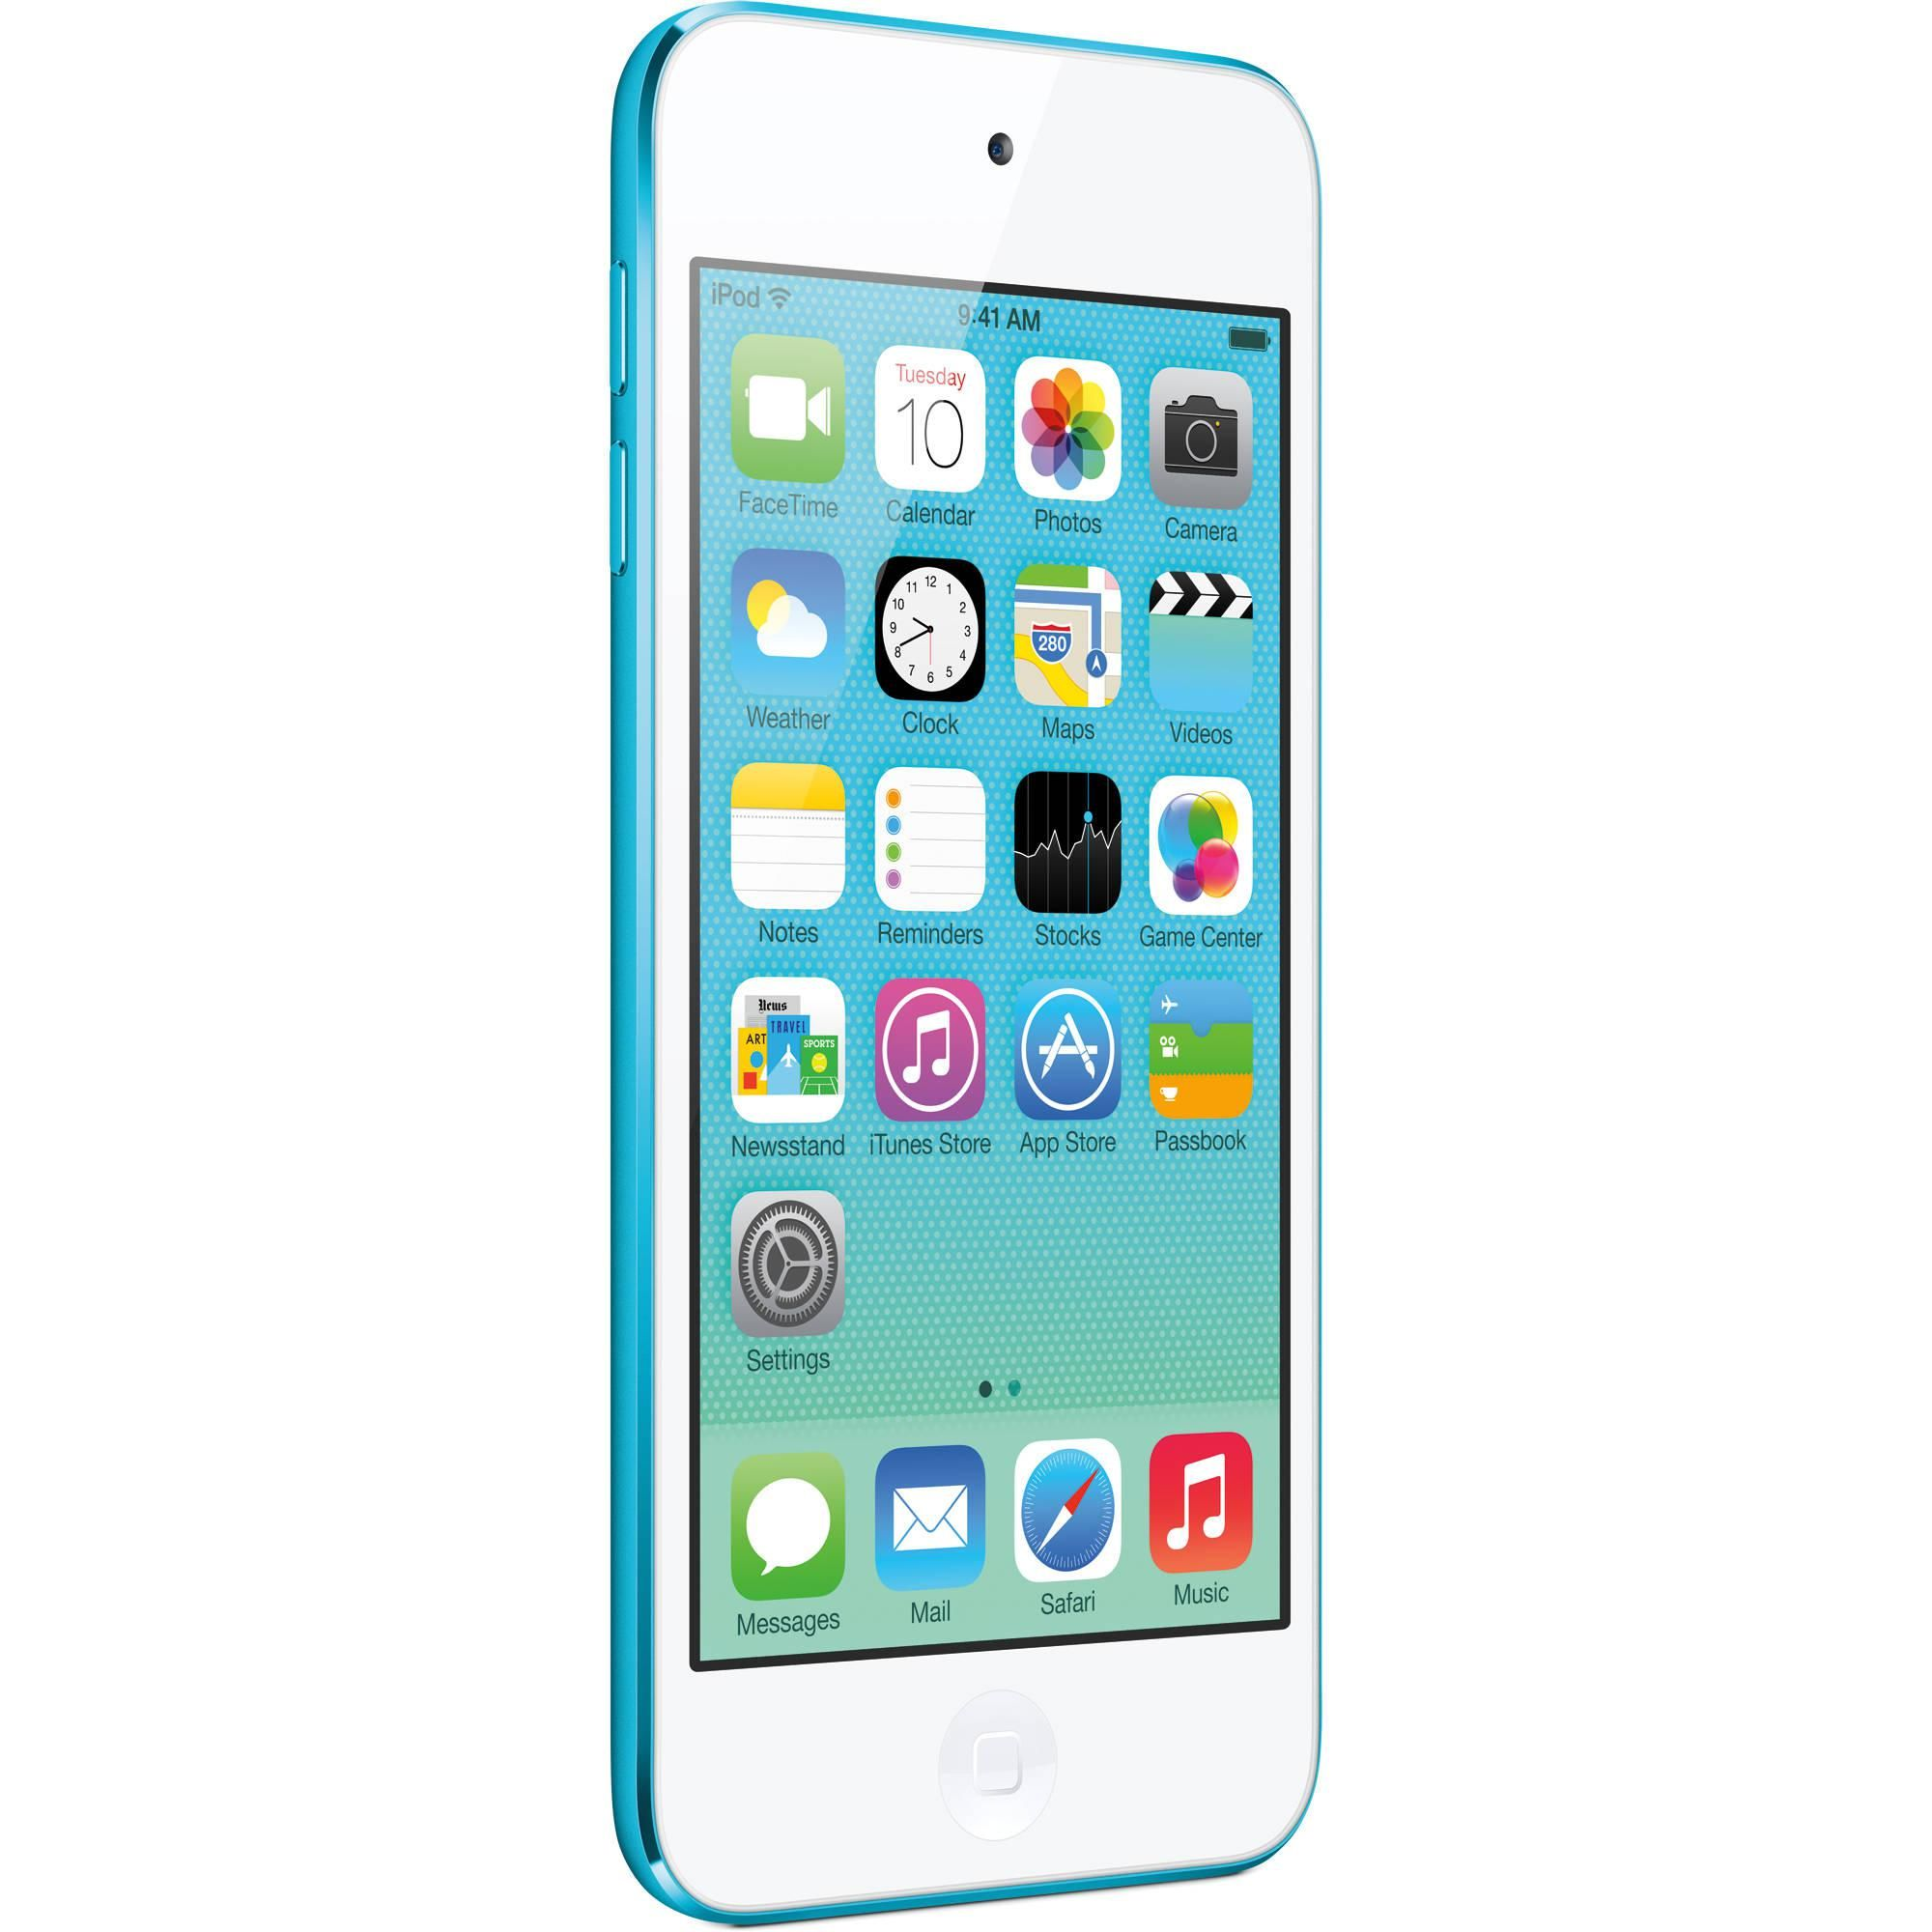 Tested All Storage Sizes Apple iPod Touch 5th Generation Used All Colors